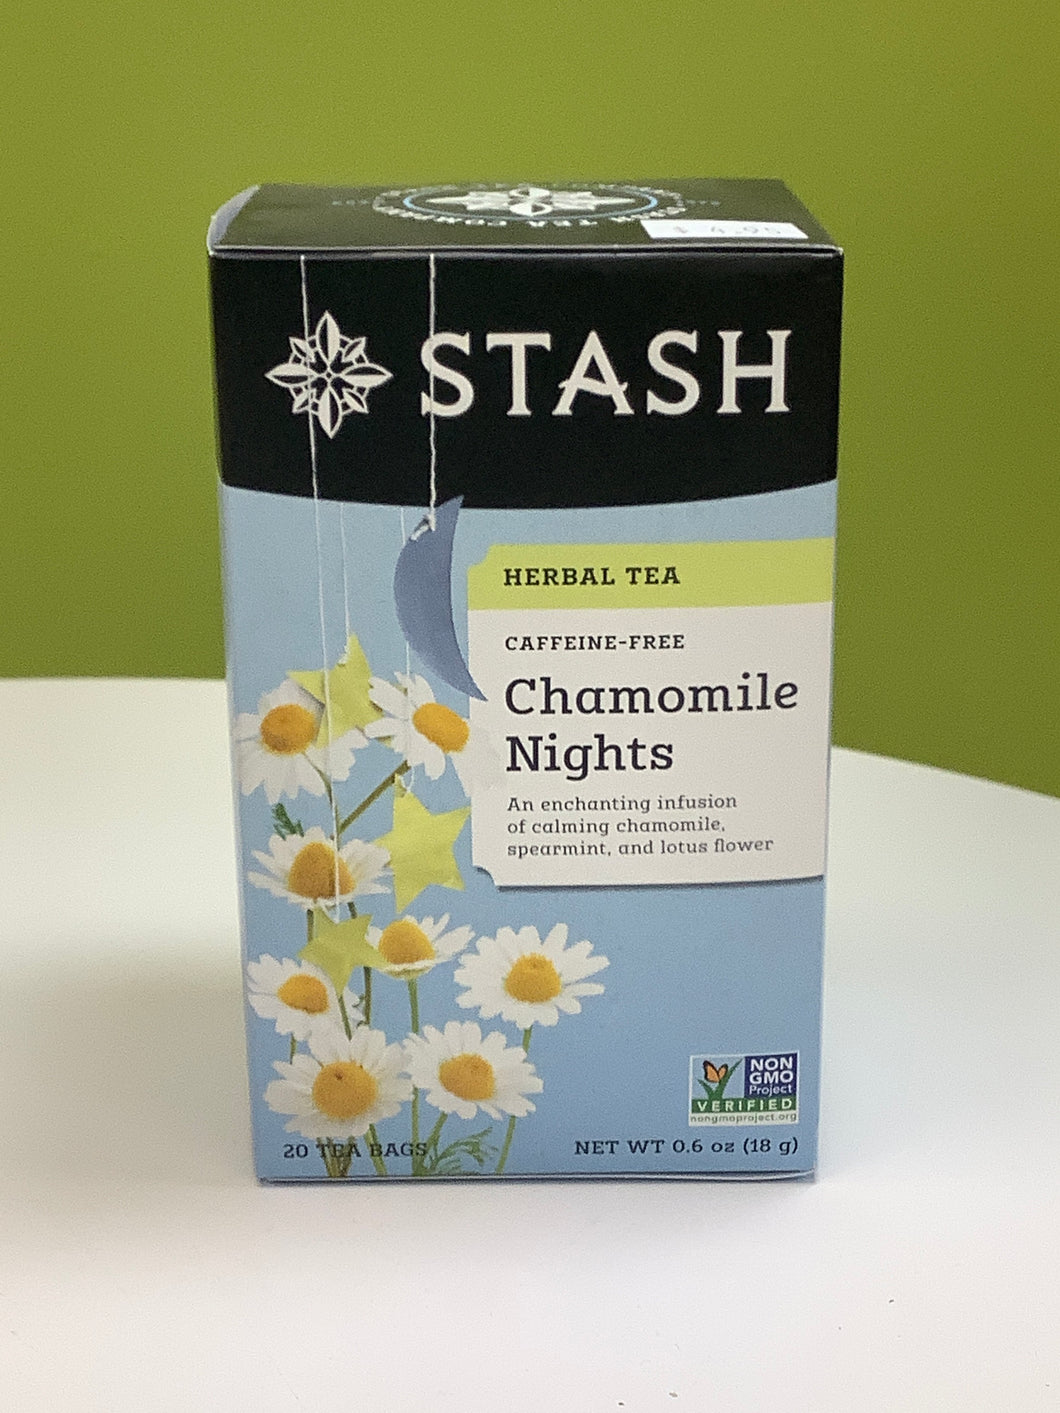 Stash Chamomile Nights Tea